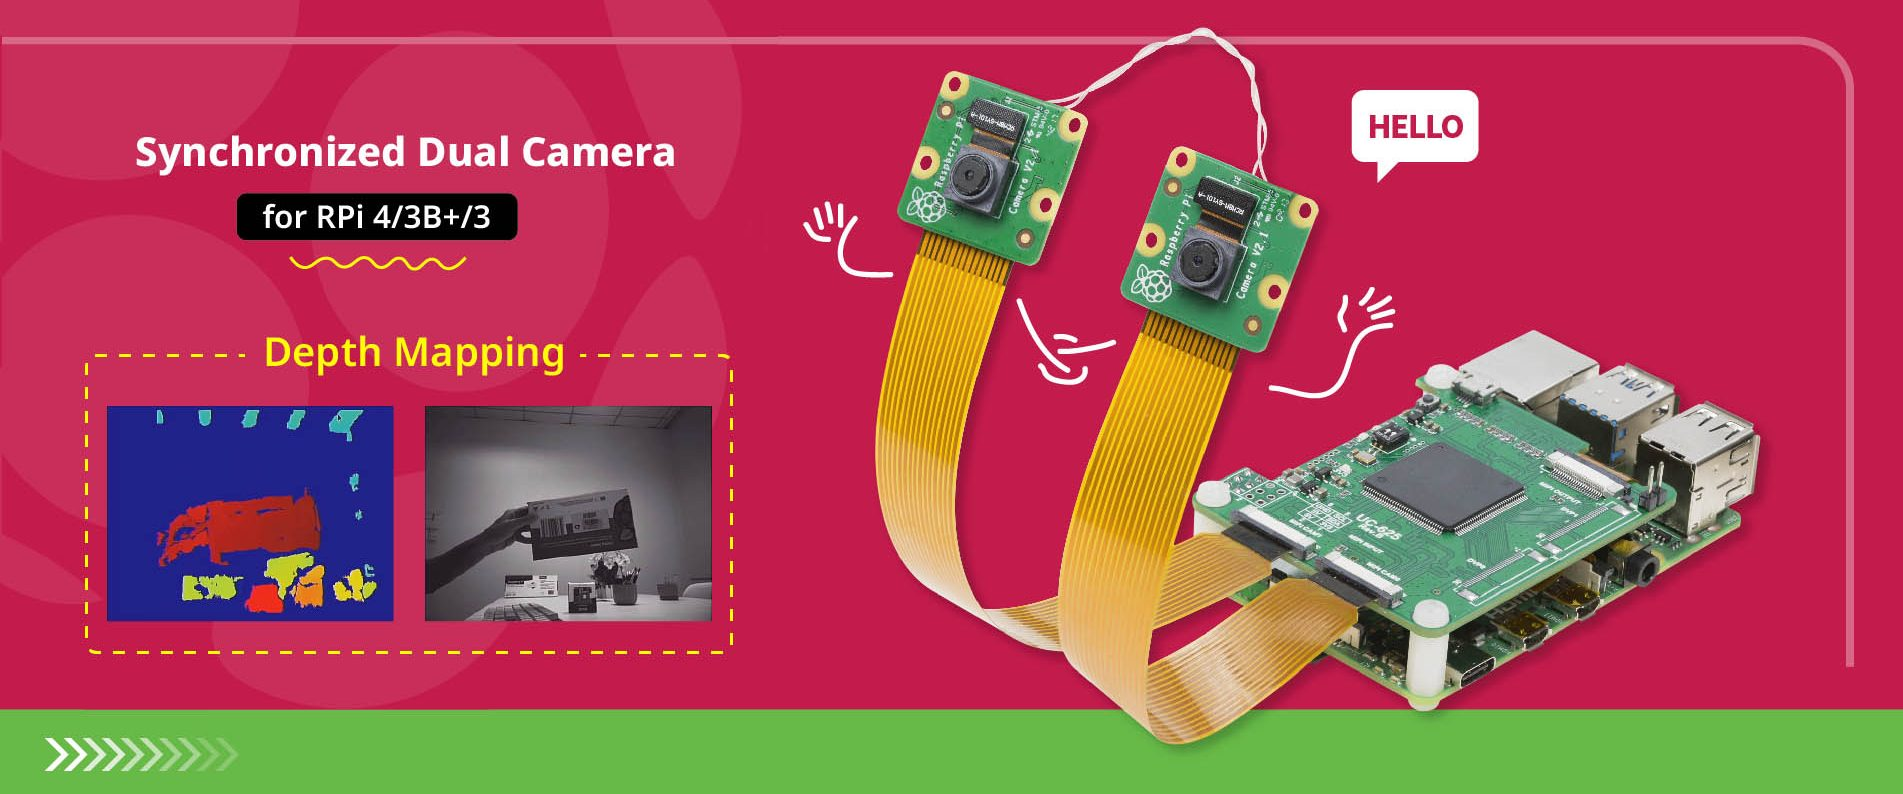 arducam-dual-sync-cam-stereo-pi-banner-mapping